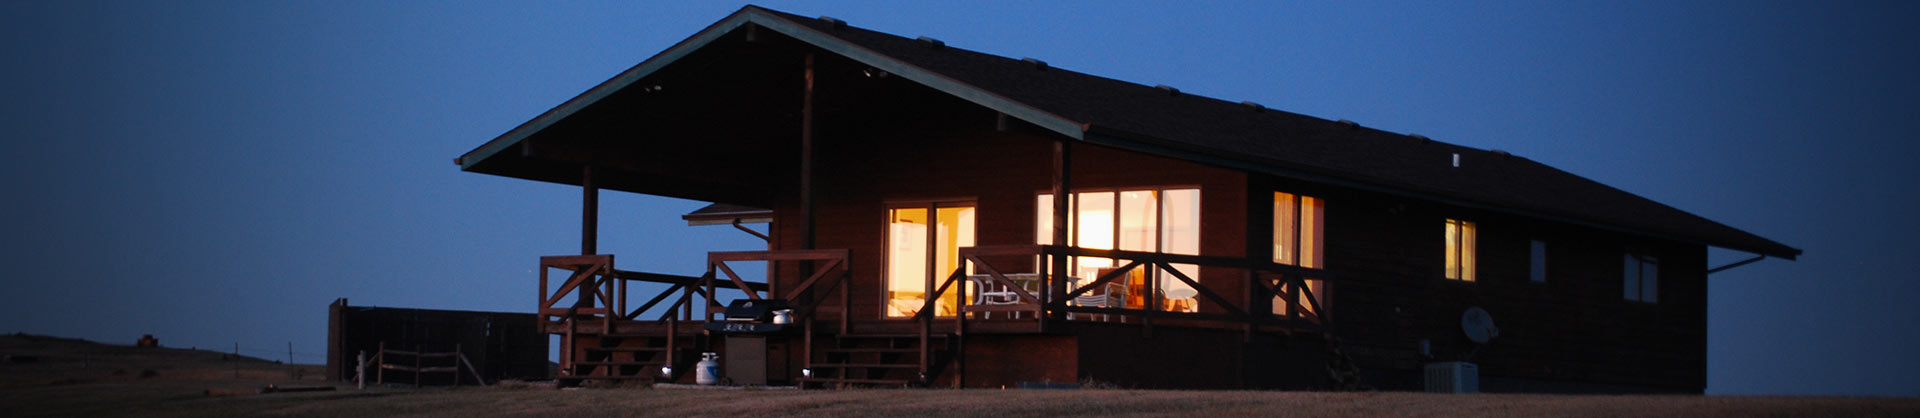 Pheasant Hunting Lodge in South Dakota | Rooster Ridge Lodge